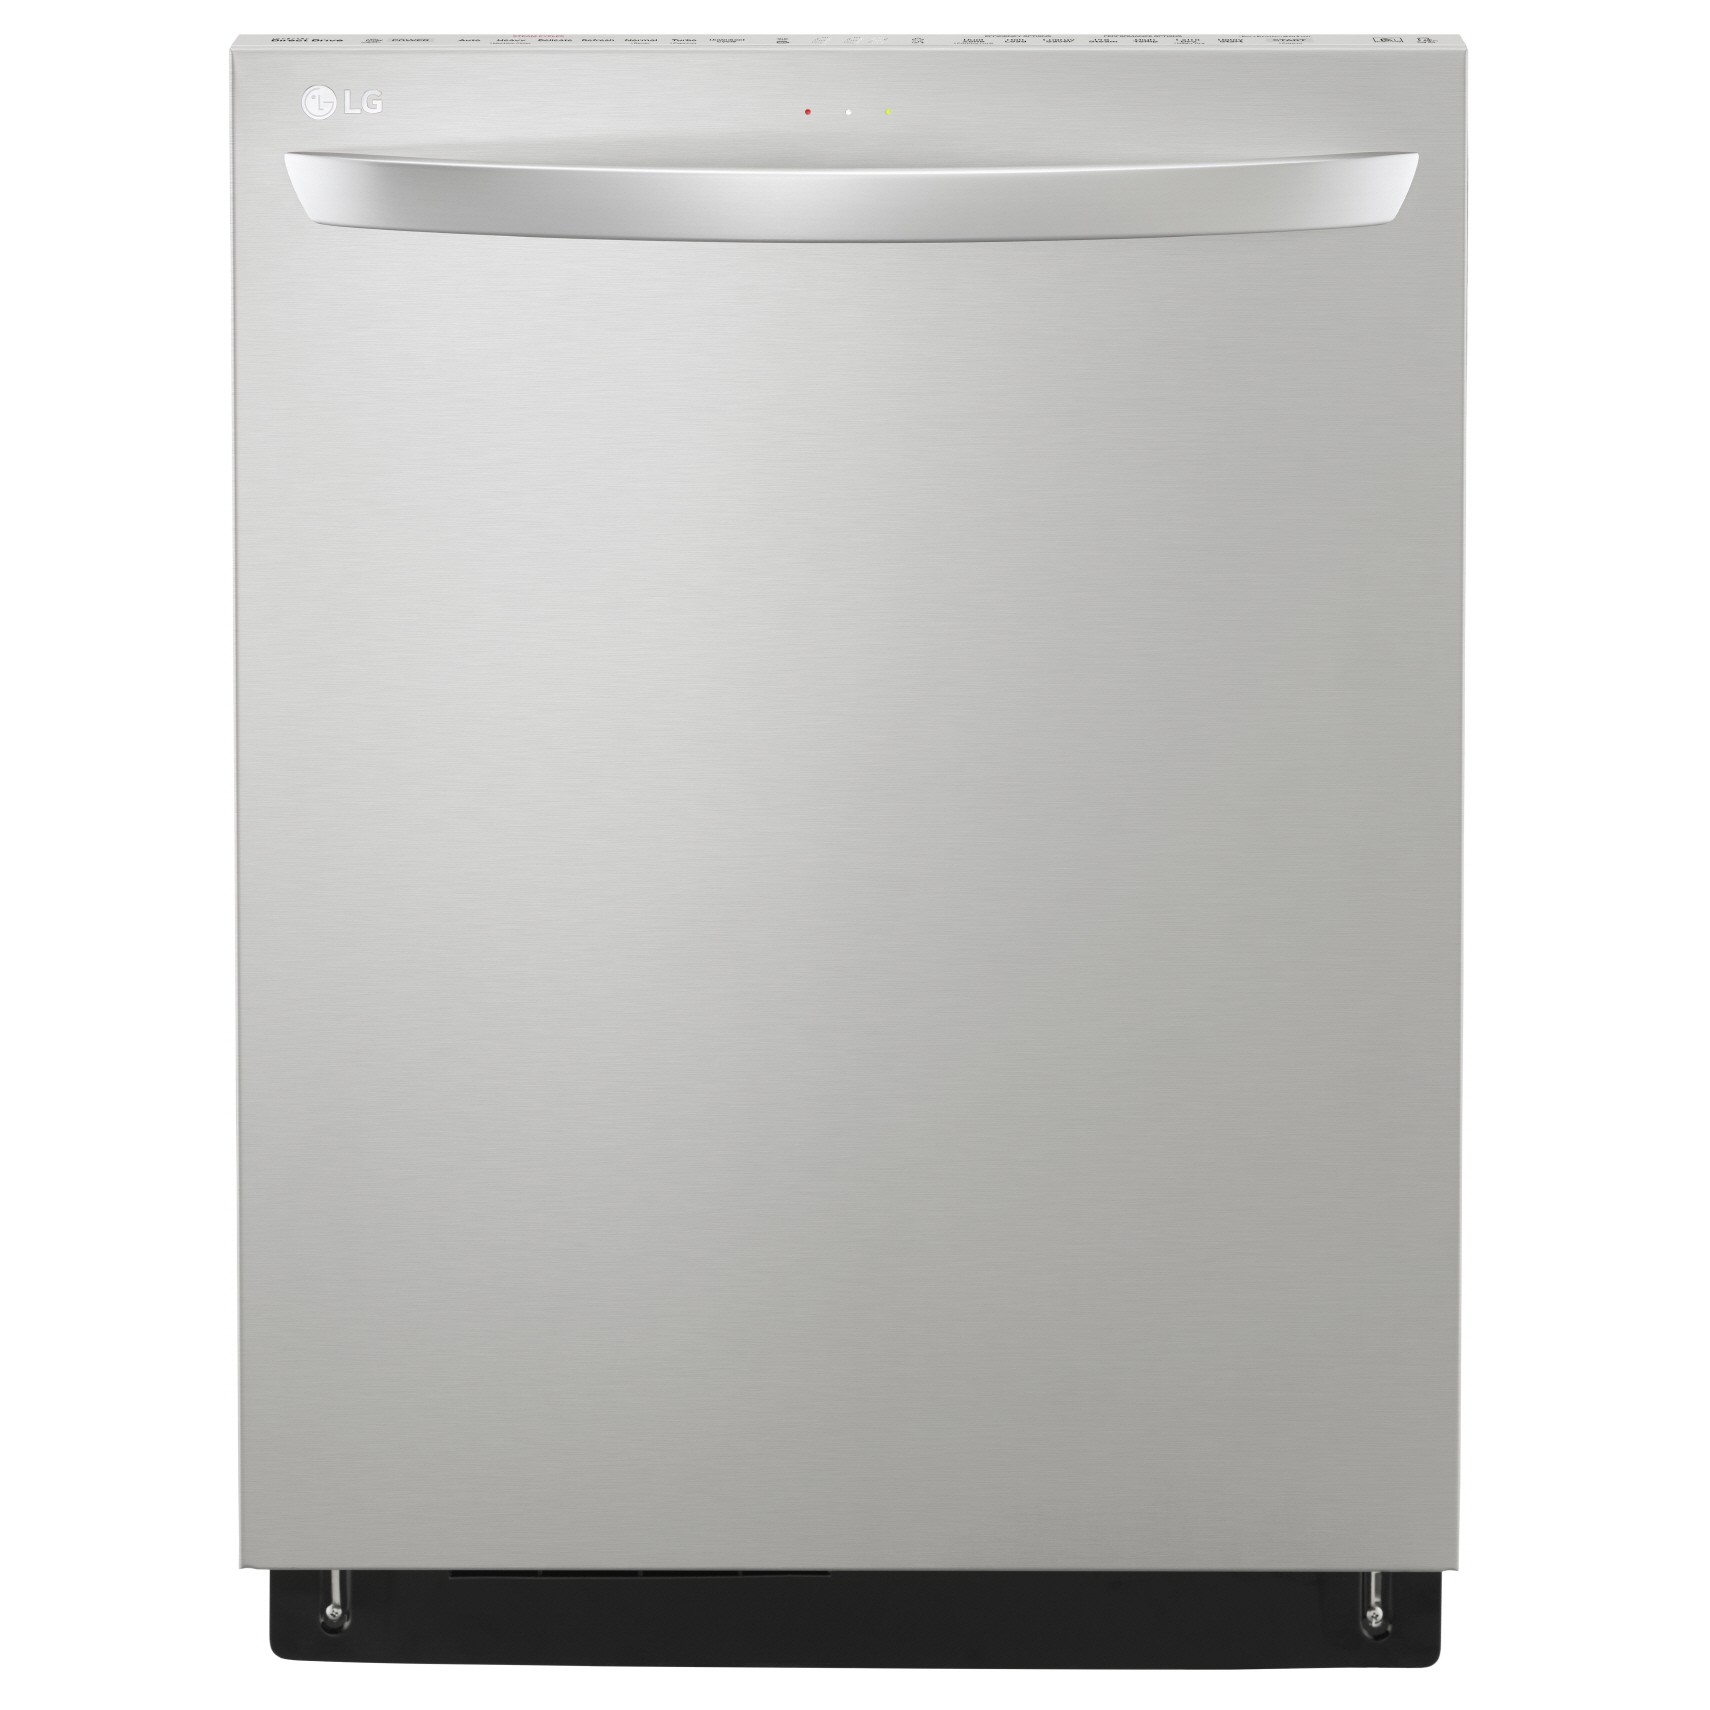 Front view of LG Dishwasher